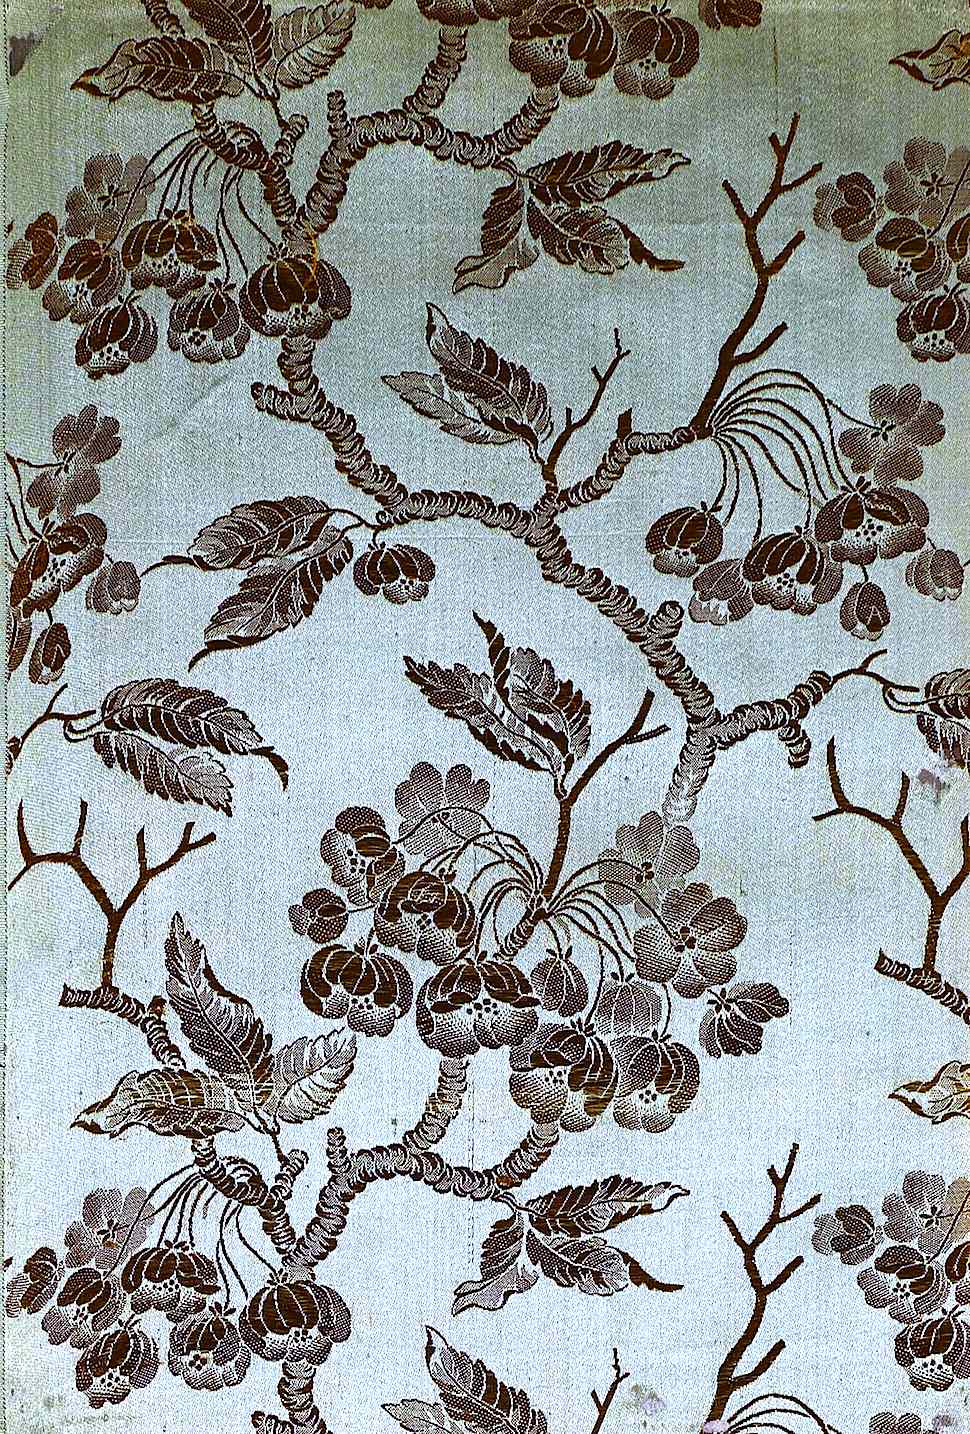 1700 silk with tree blossoms, a color photograph